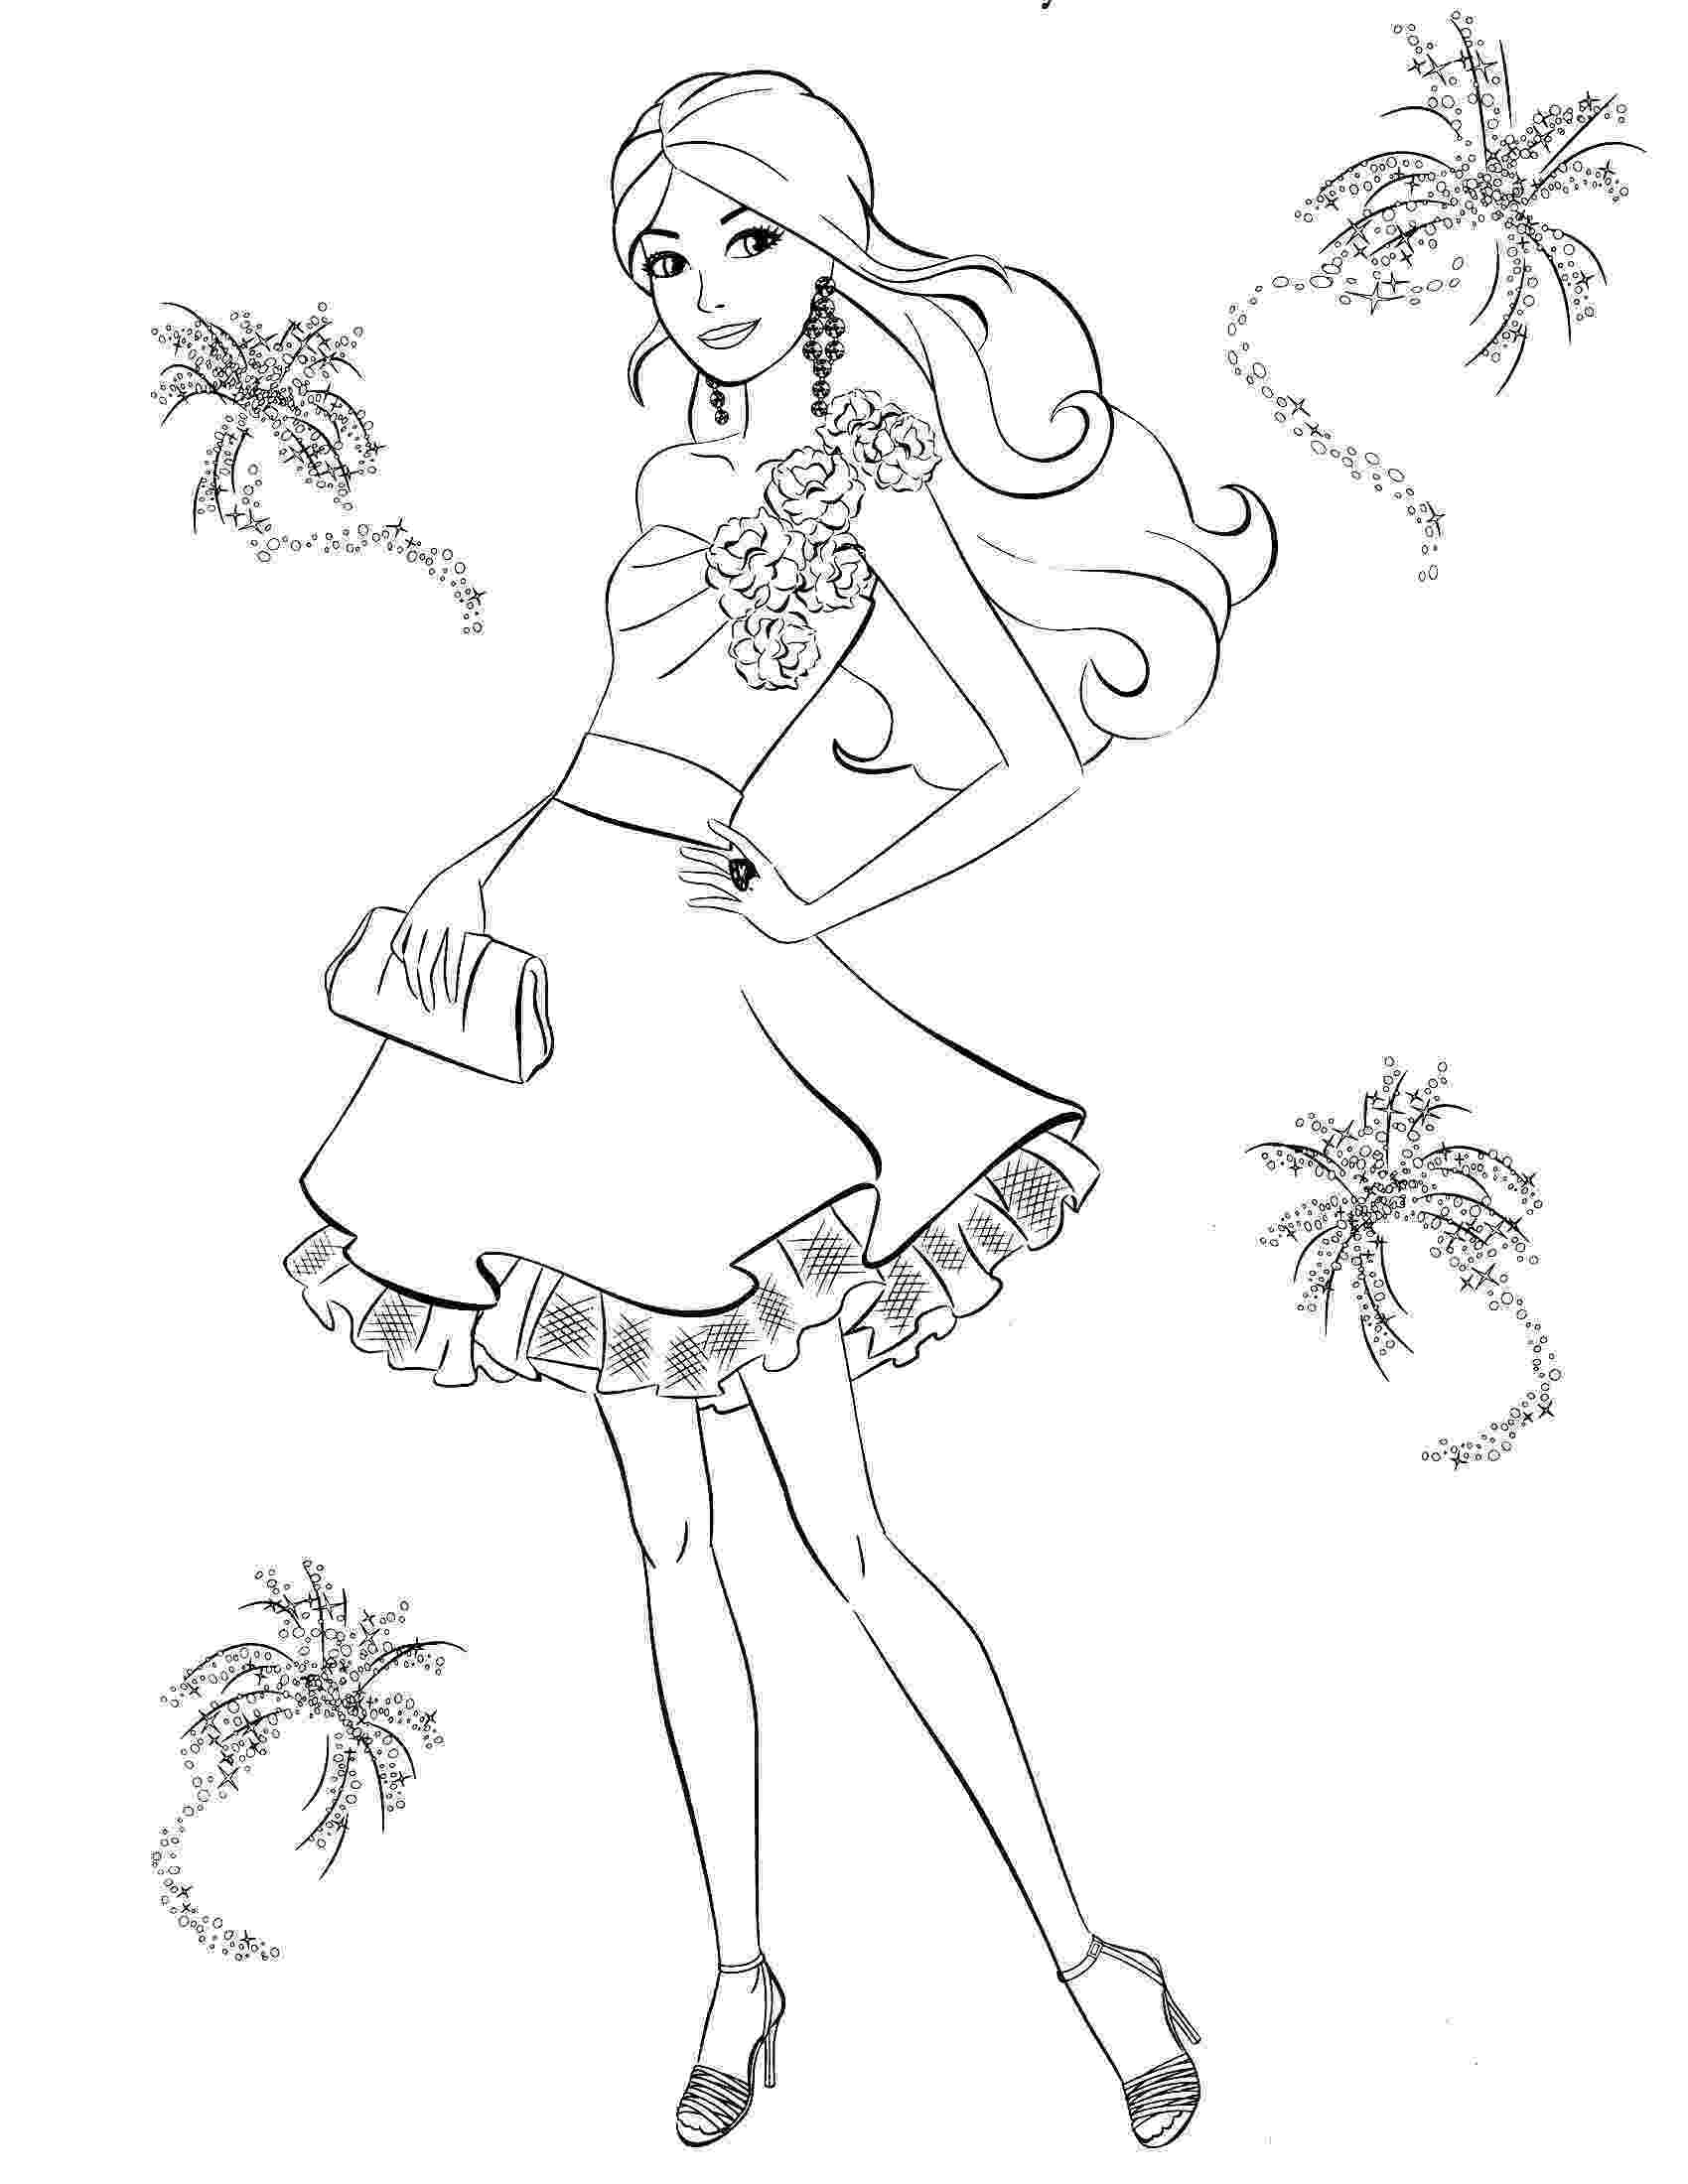 barbie pictures to color games printable barbie princess coloring pages for kids cool2bkids to pictures barbie color games